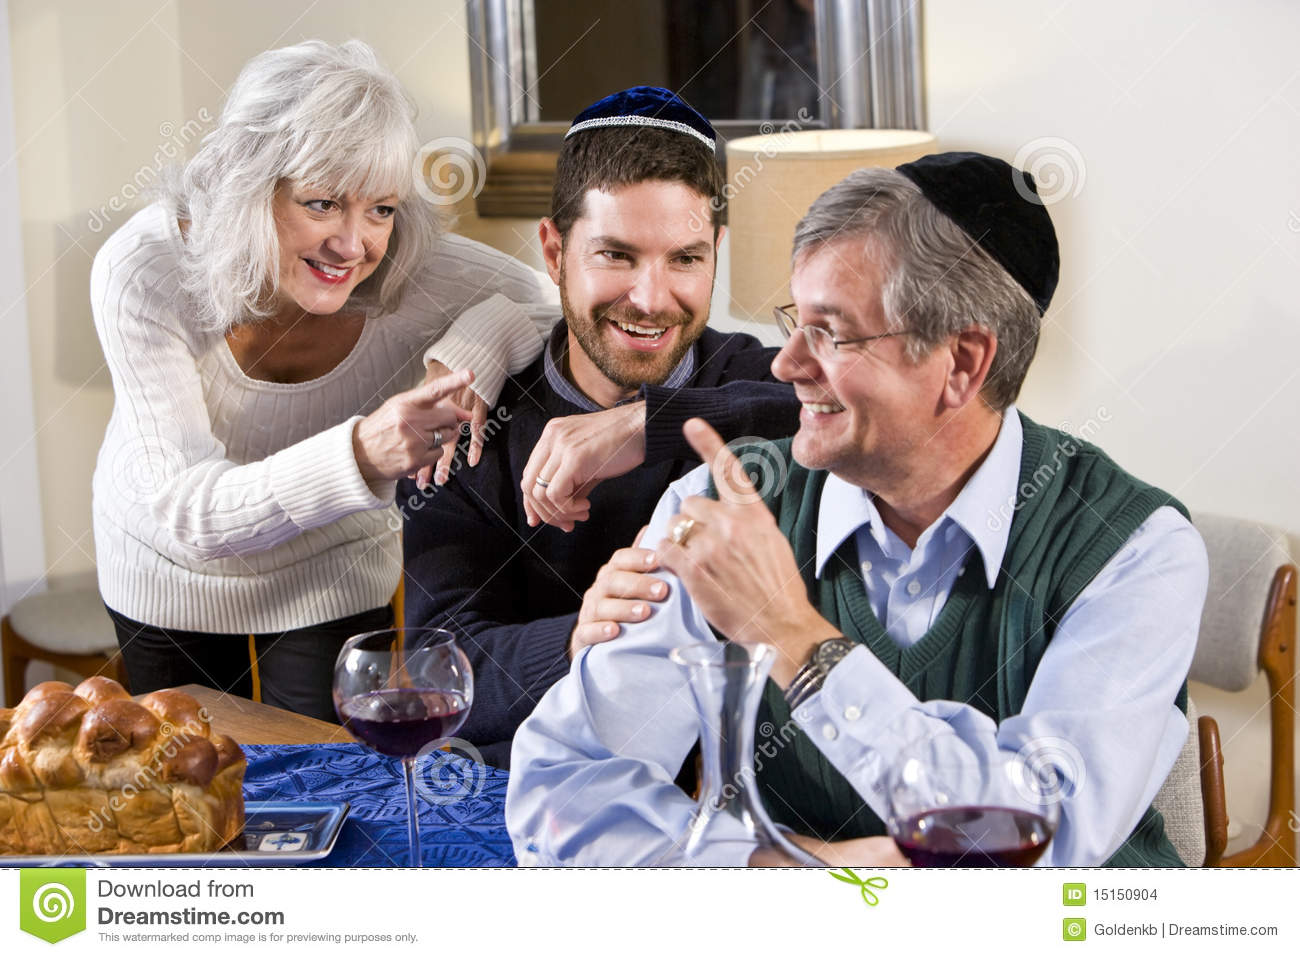 hometown jewish single men Intermarriage once meant jewish men marrying blond all-american women new data from the pew study says jewish women are now more likely to wed outside the faith.